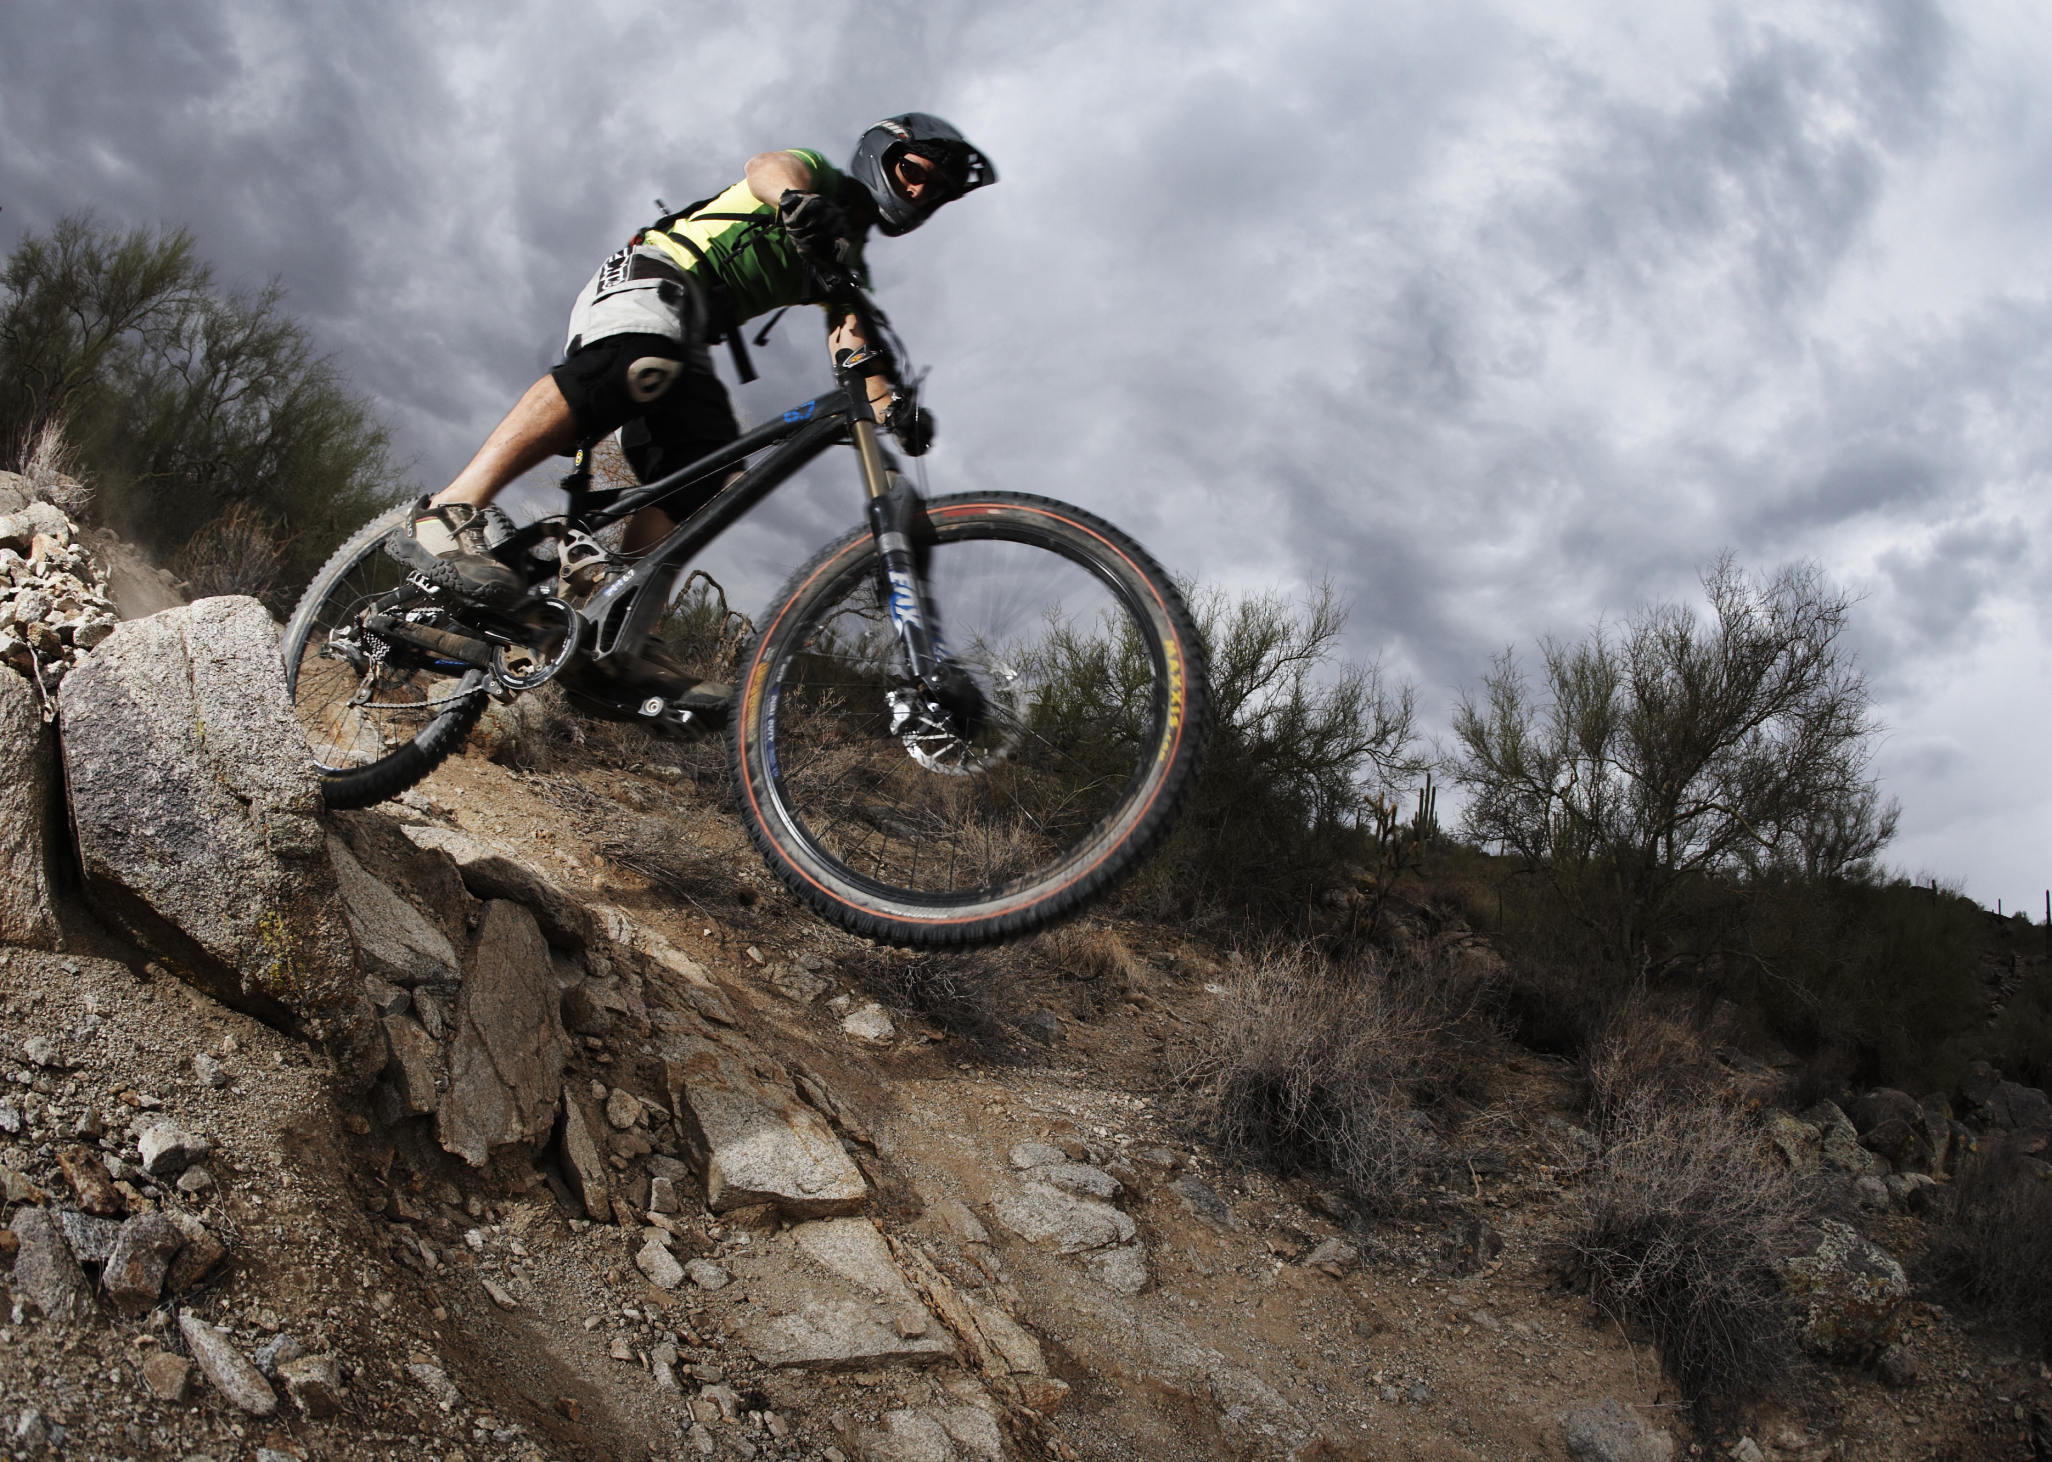 aab3318d43a What Is the Difference Between a Downhill Bike & a Freeride Bike? |  Chron.com